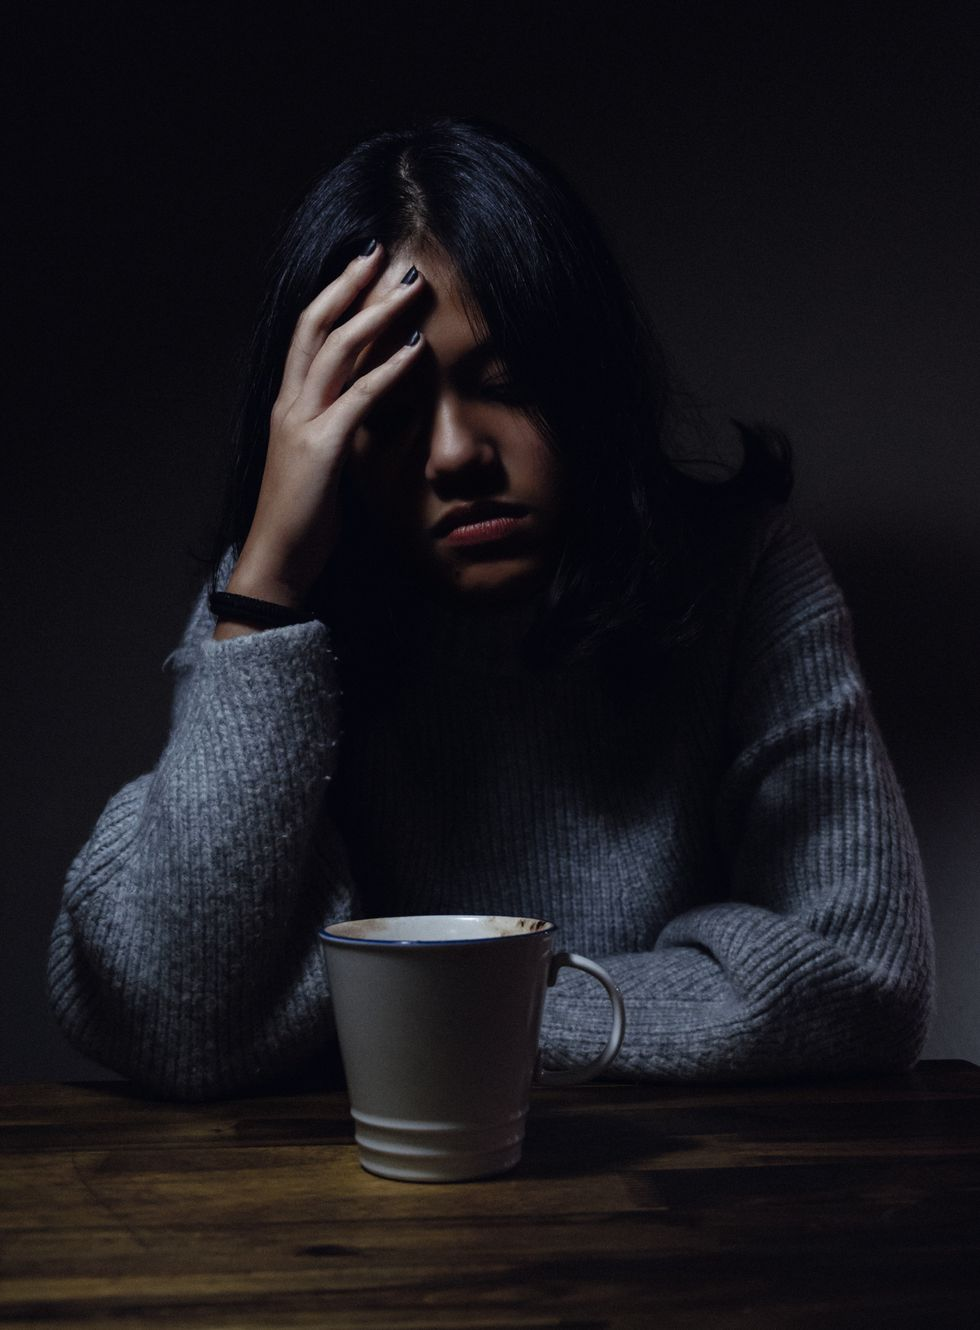 I Had To Break Up With My Therapist And Moving On Has Never Been So Terrifying